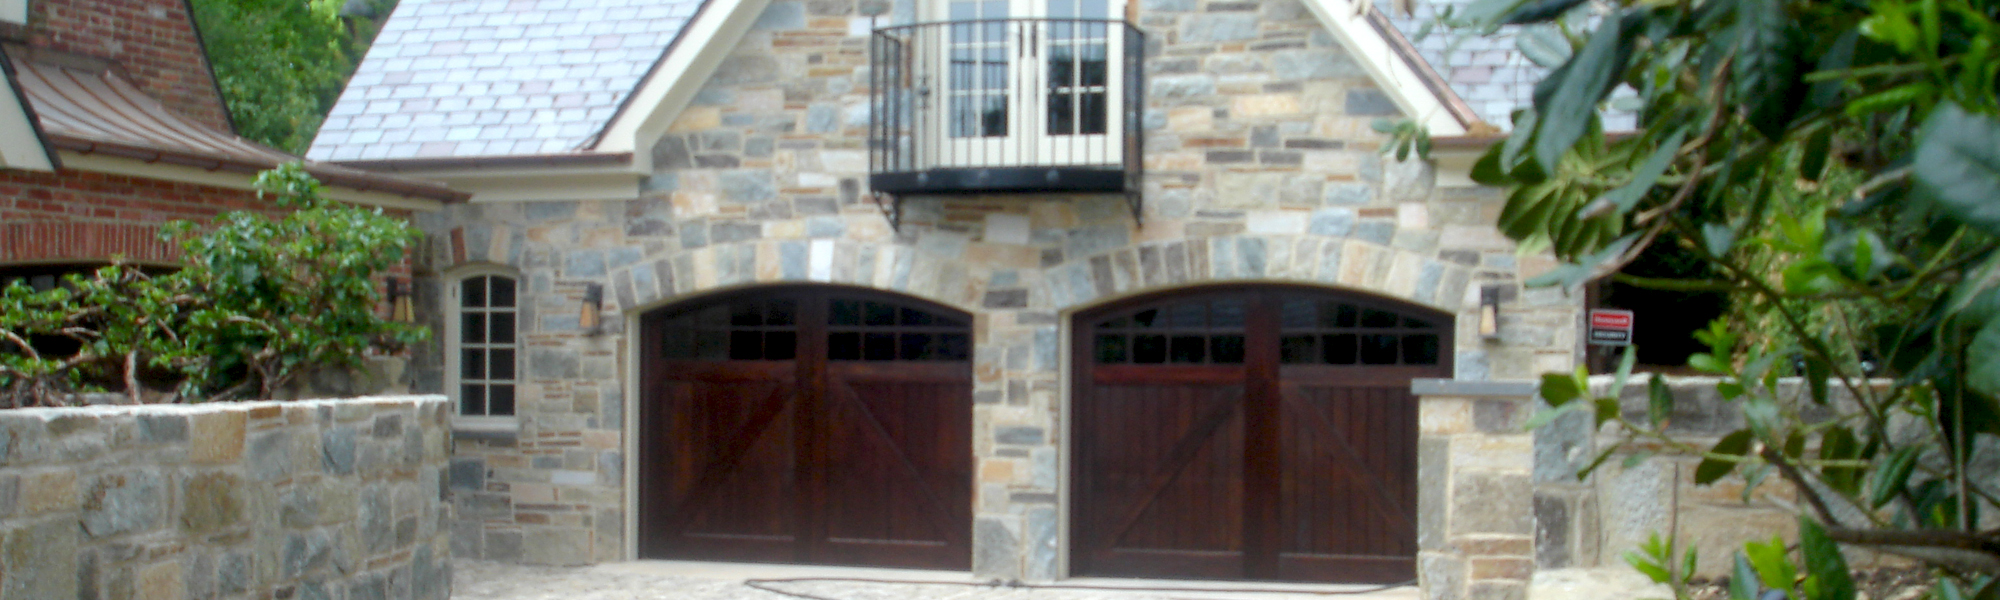 Purchase Consultation Carriage House Garage Addition In Chevy Chase Md Bowa